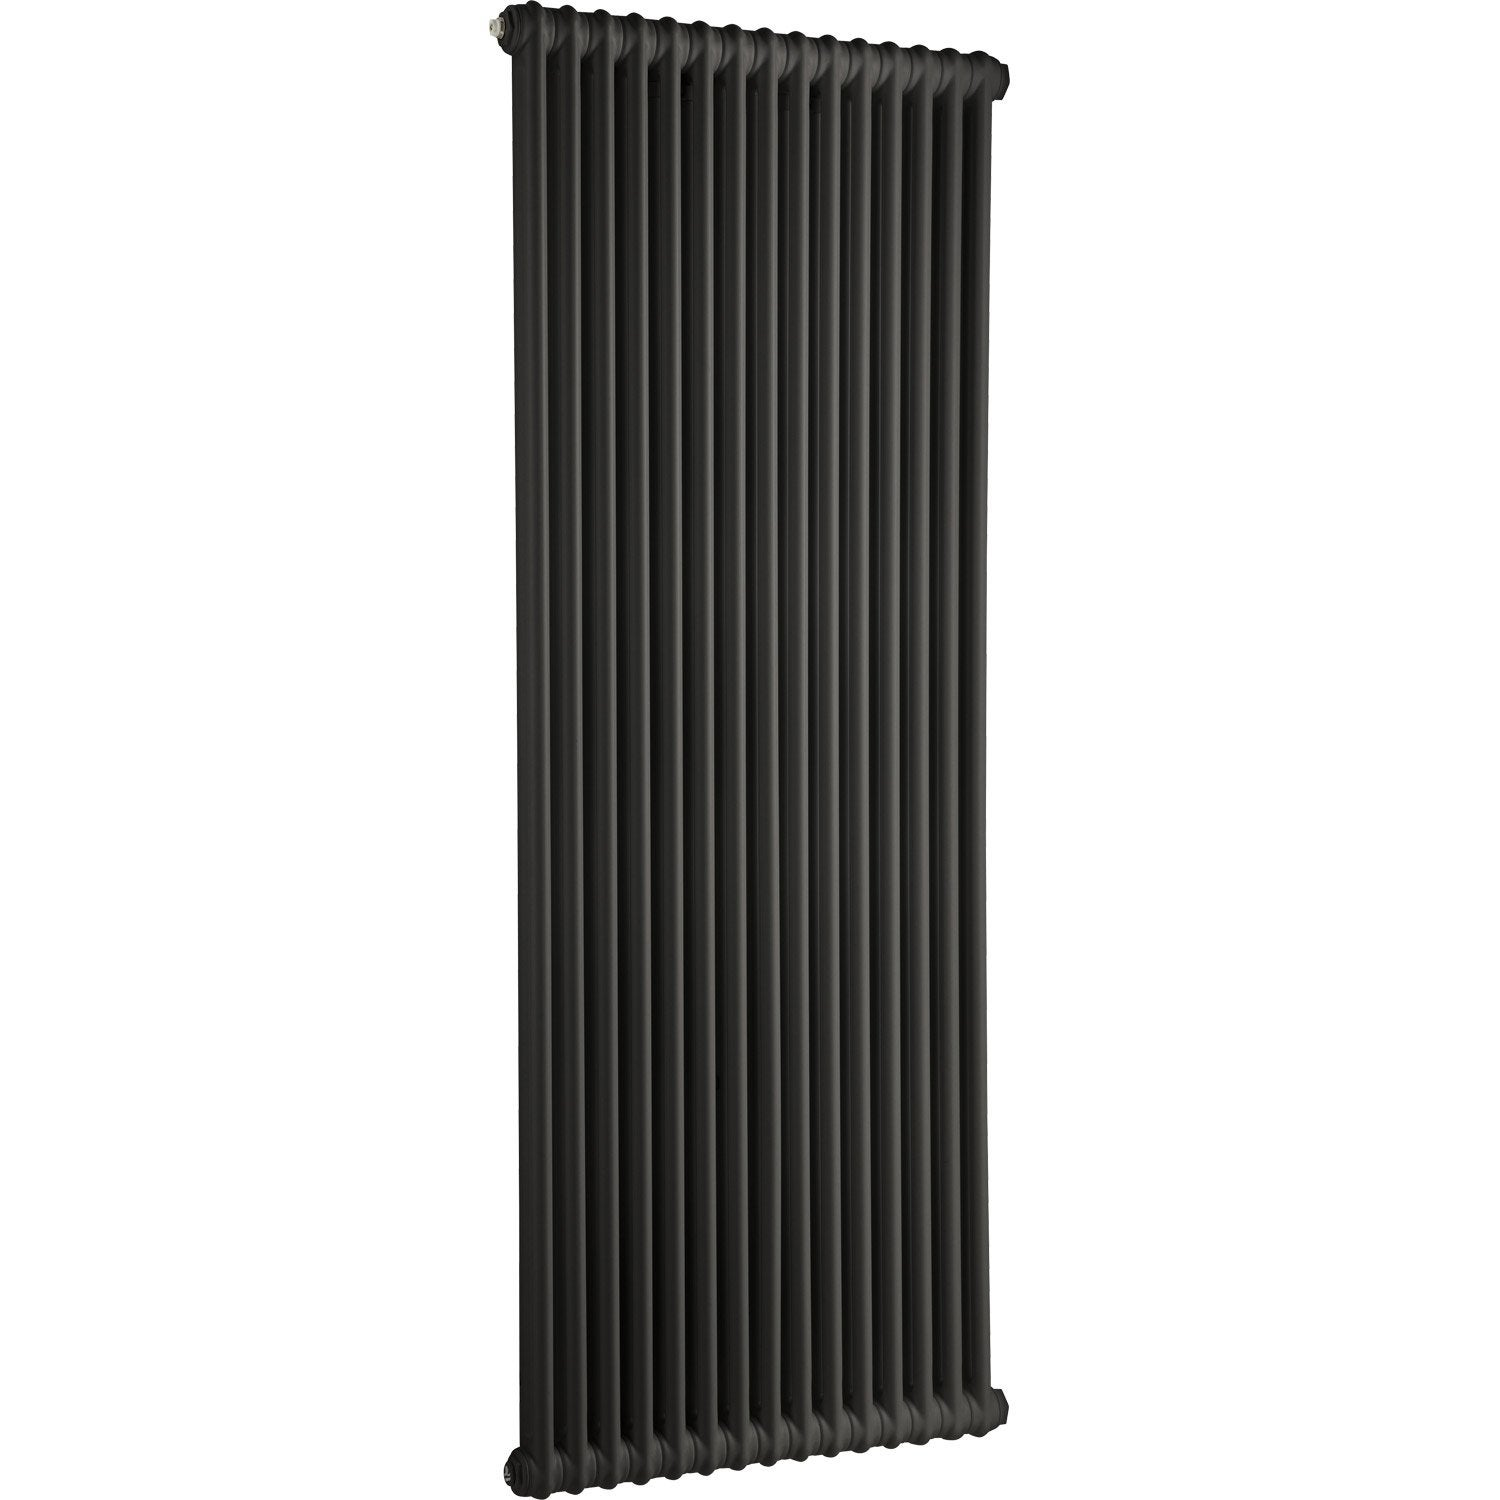 radiateur chauffage central acier tesi 2 noir 1864w. Black Bedroom Furniture Sets. Home Design Ideas